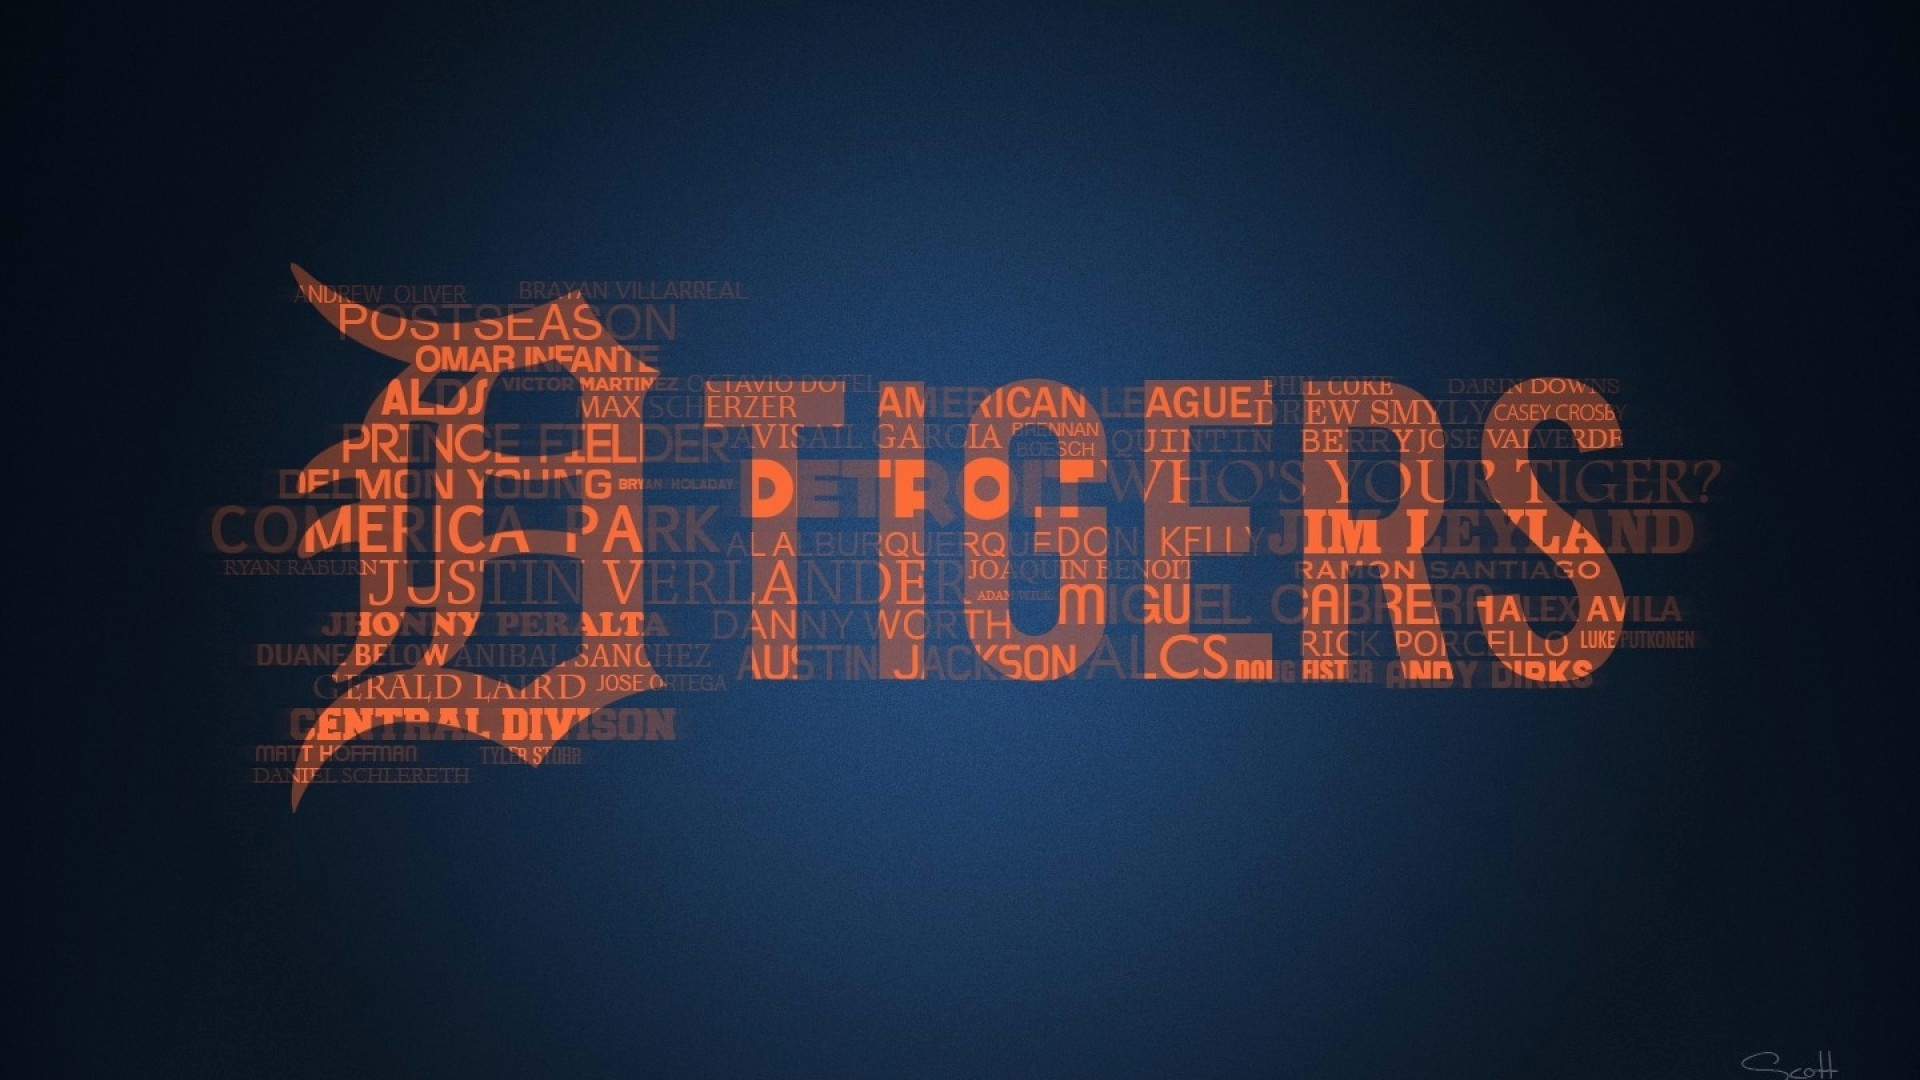 detroit tigers wallpaper awesome detroit tigers desktop wallpaper 56